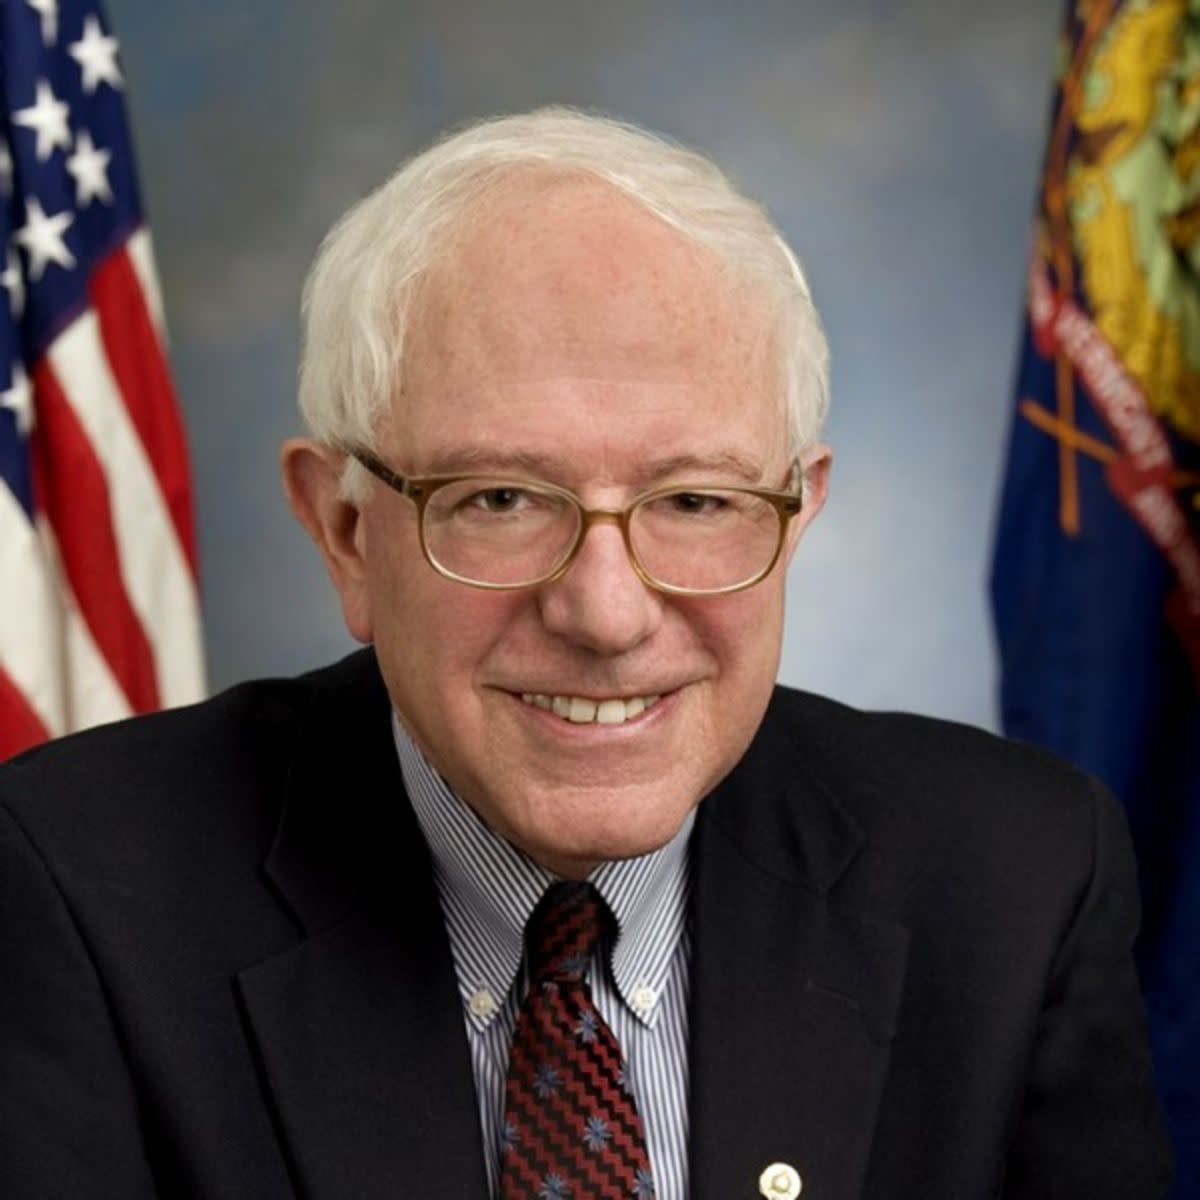 Bernie Sanders is sometimes classified as an Independent although he ran for President in 2016 representing the Democratic Party.